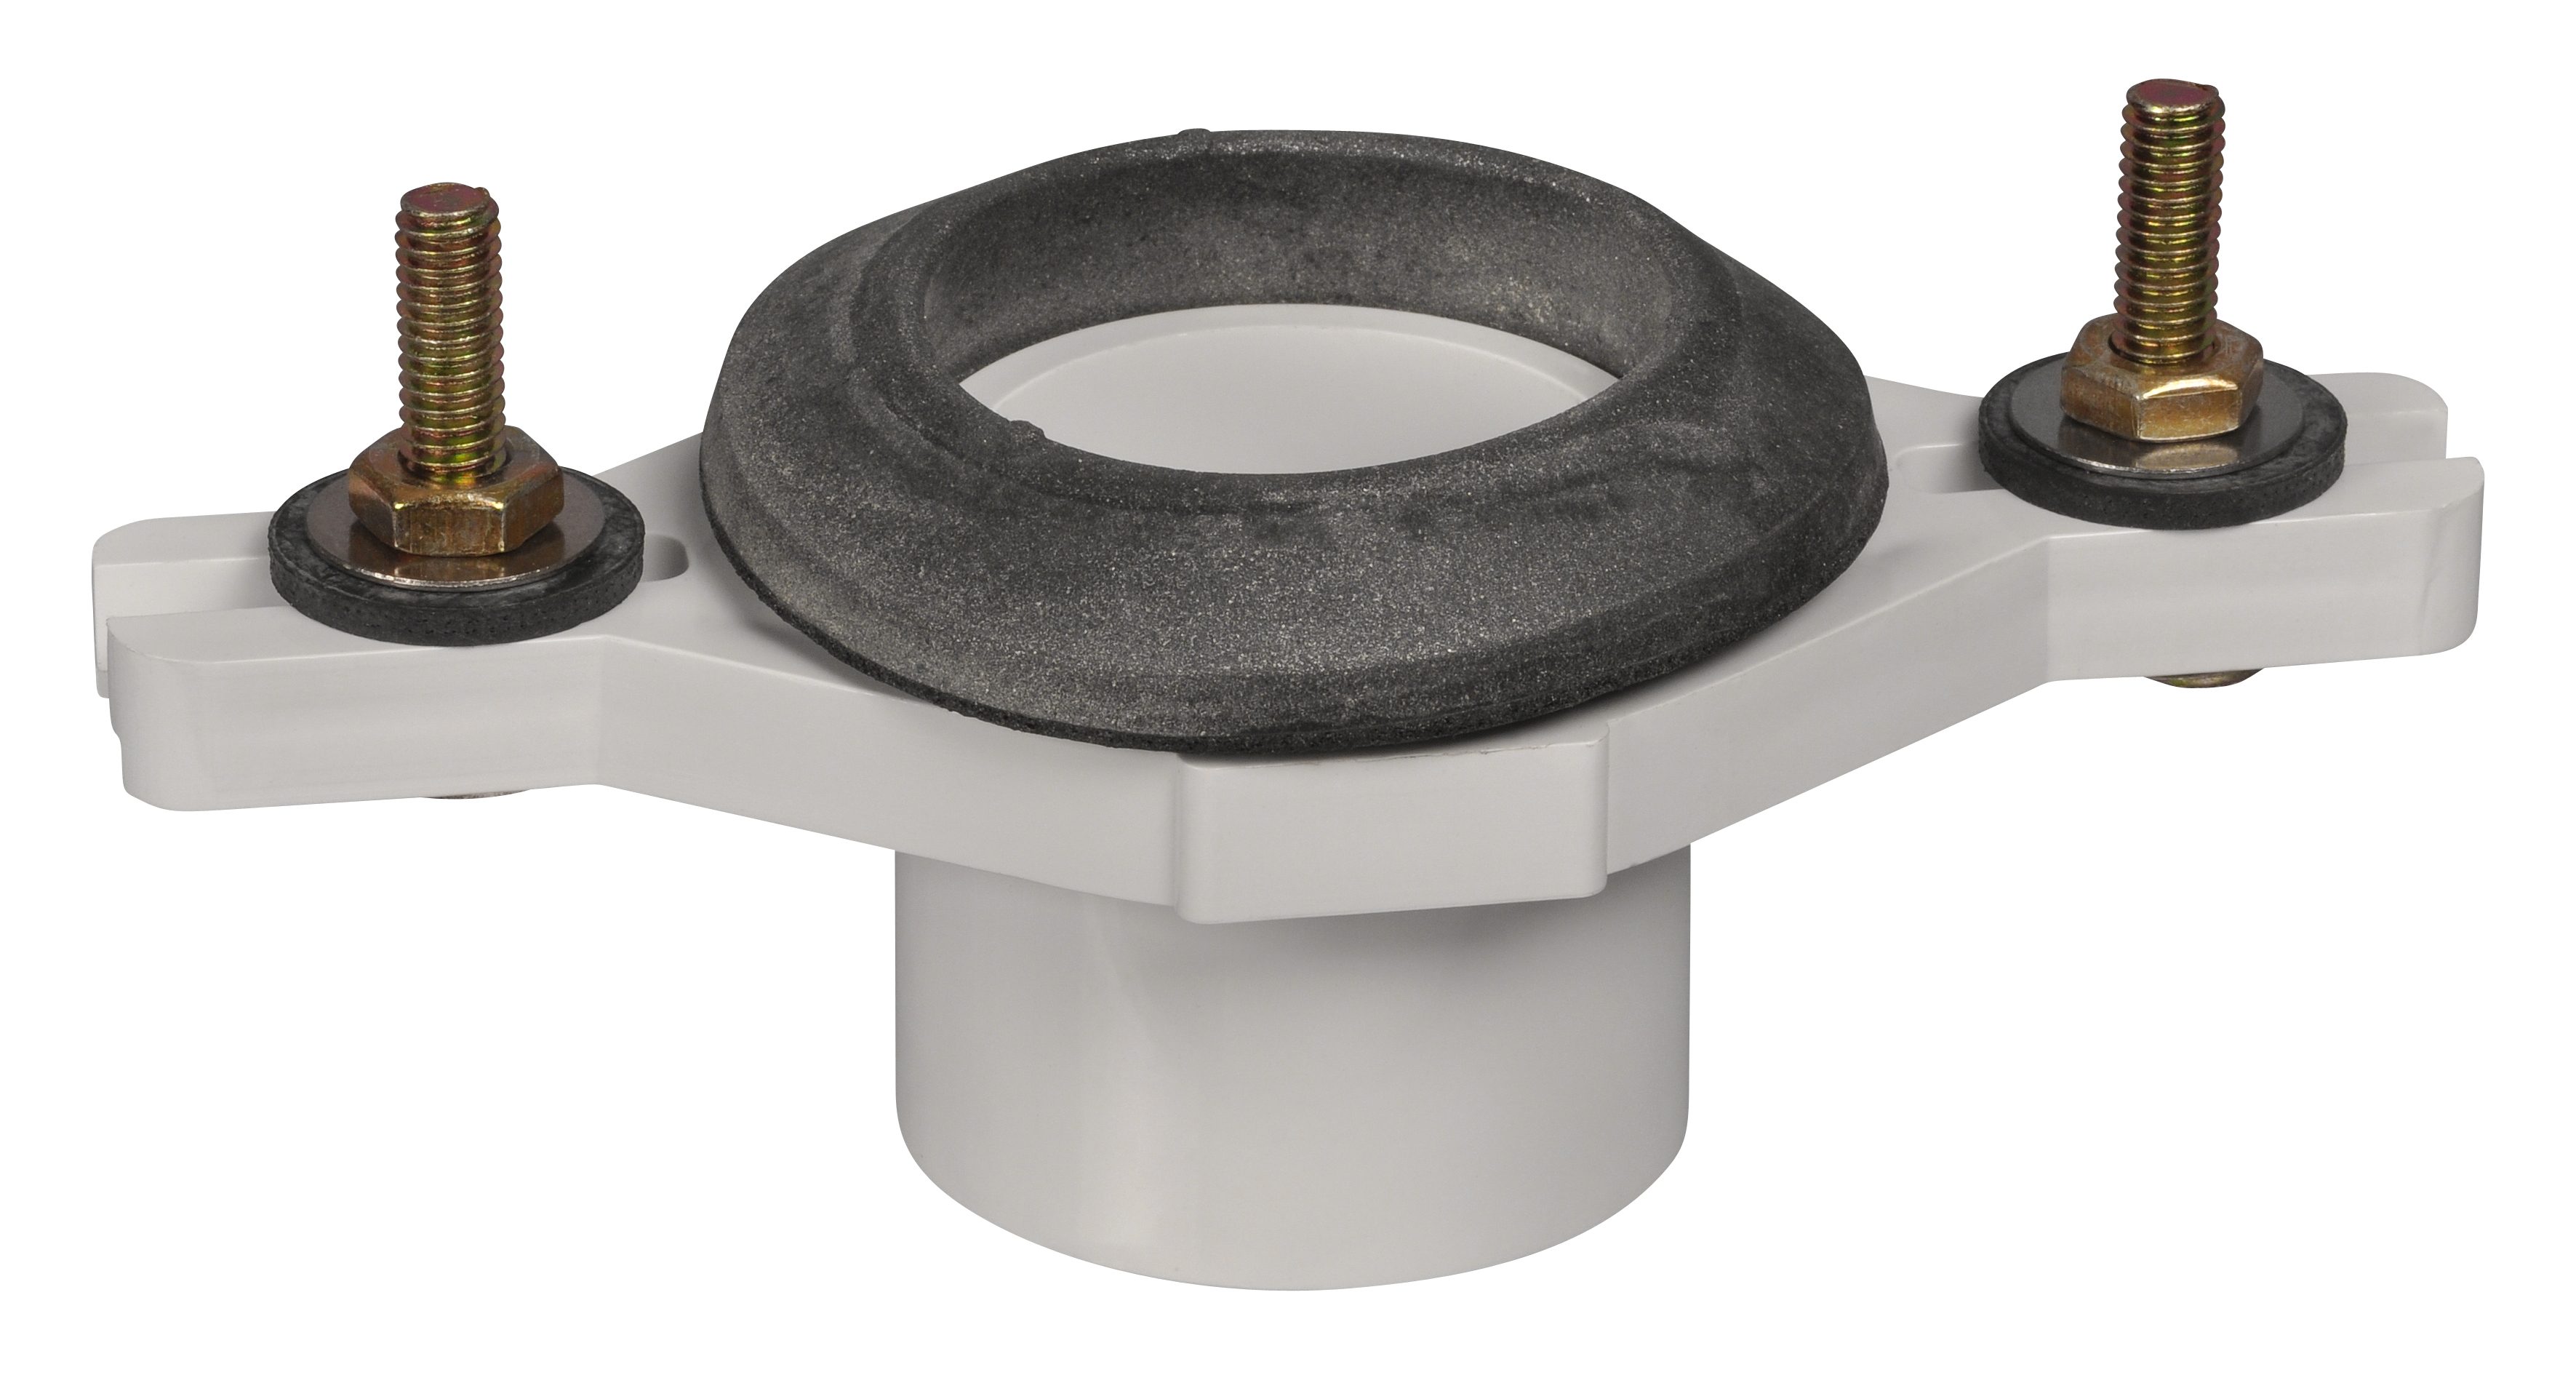 AB&A Adjustable Urinal Flange Kit, Spigot - PVC 2